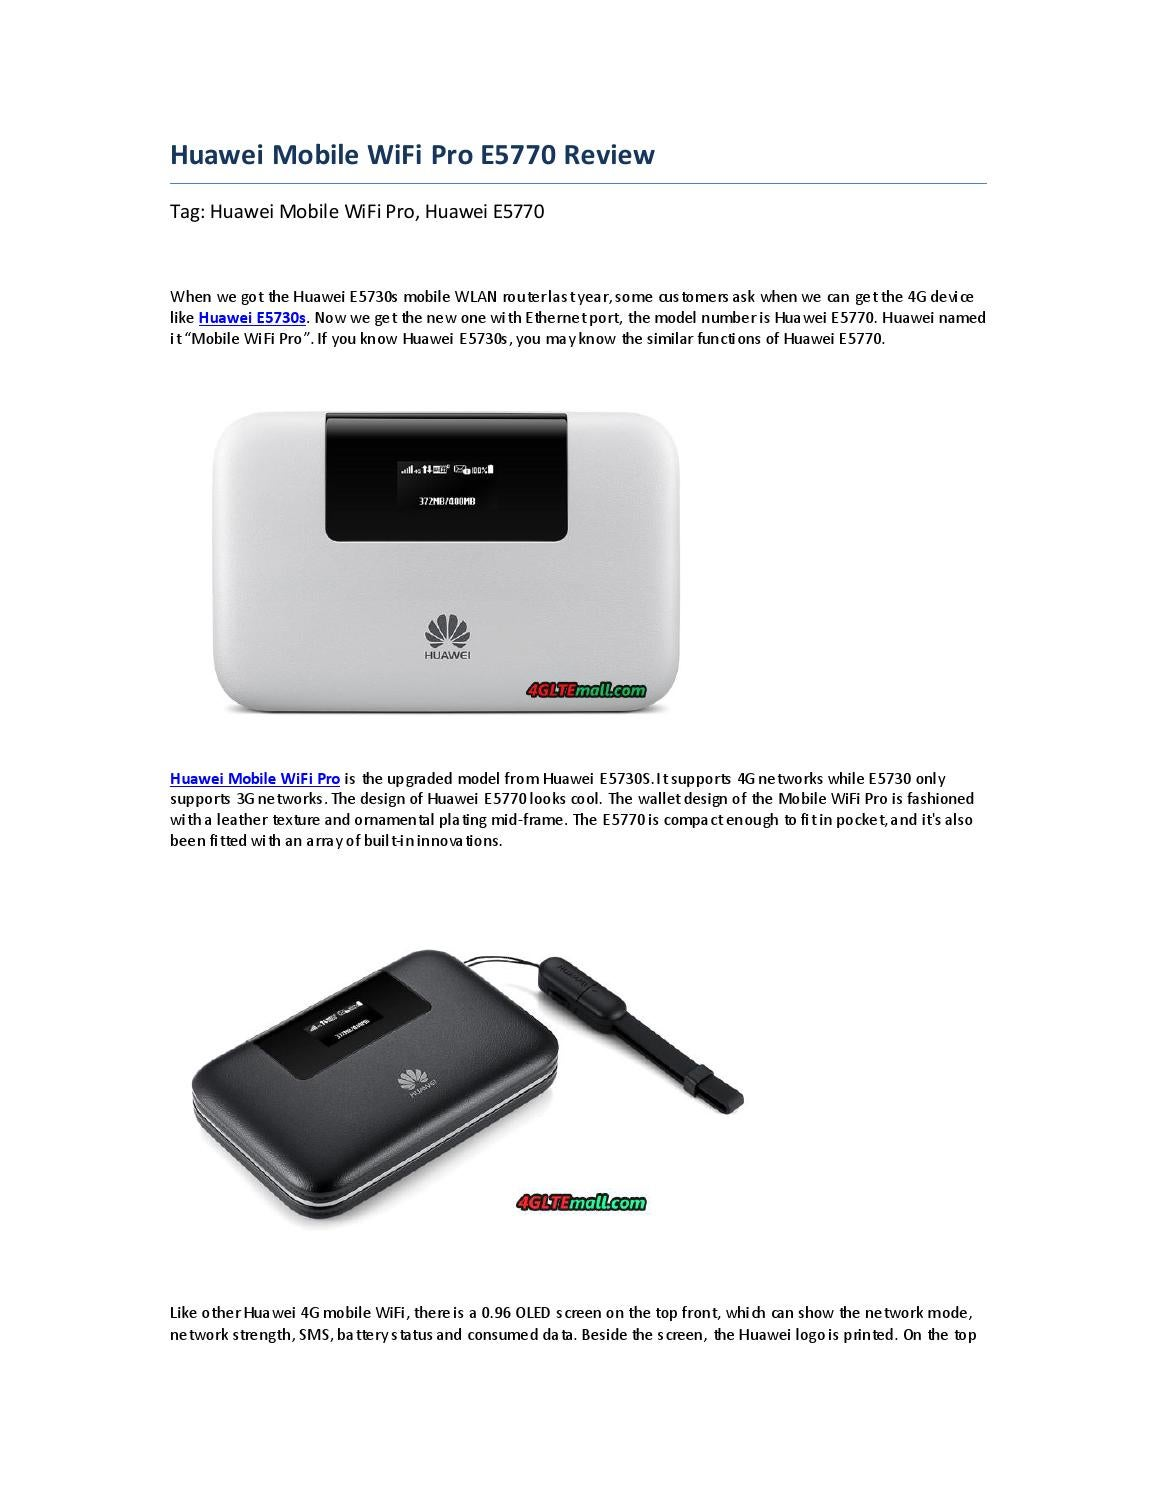 Huawei Mobile WiFi Pro E5770 Review by Lte Mall - issuu